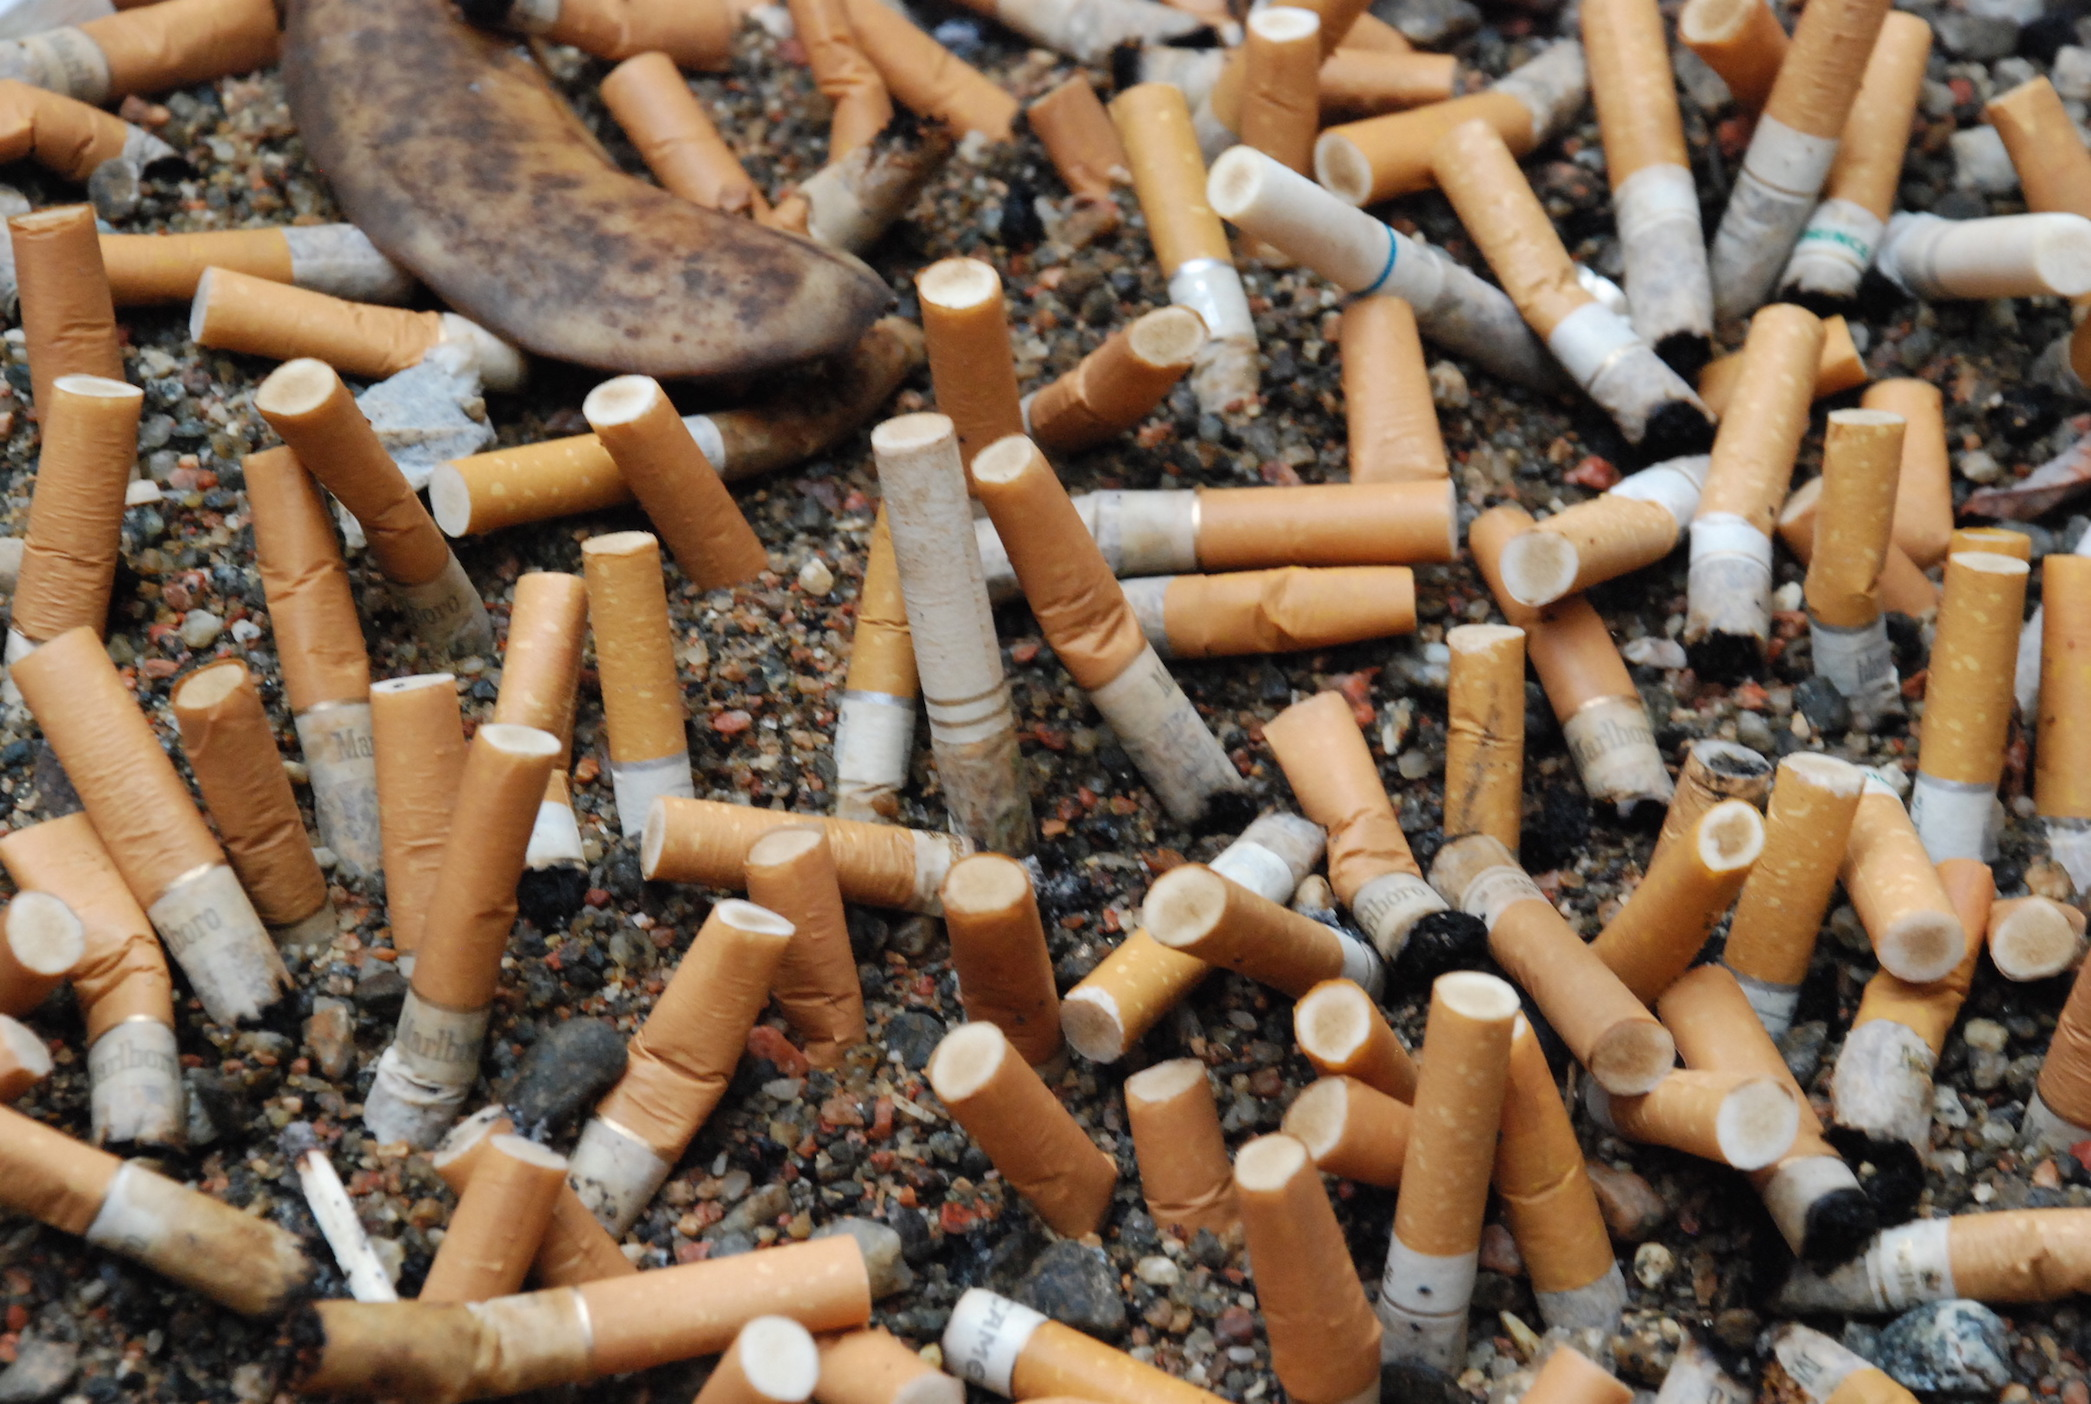 environmental impact of tobacco However, one of the most overlooked issues smoking creates is the damaging impact the use, and subsequent discarding of cigarettes, has on the environment generally, the public is well aware that second-hand smoke is very dangerous.